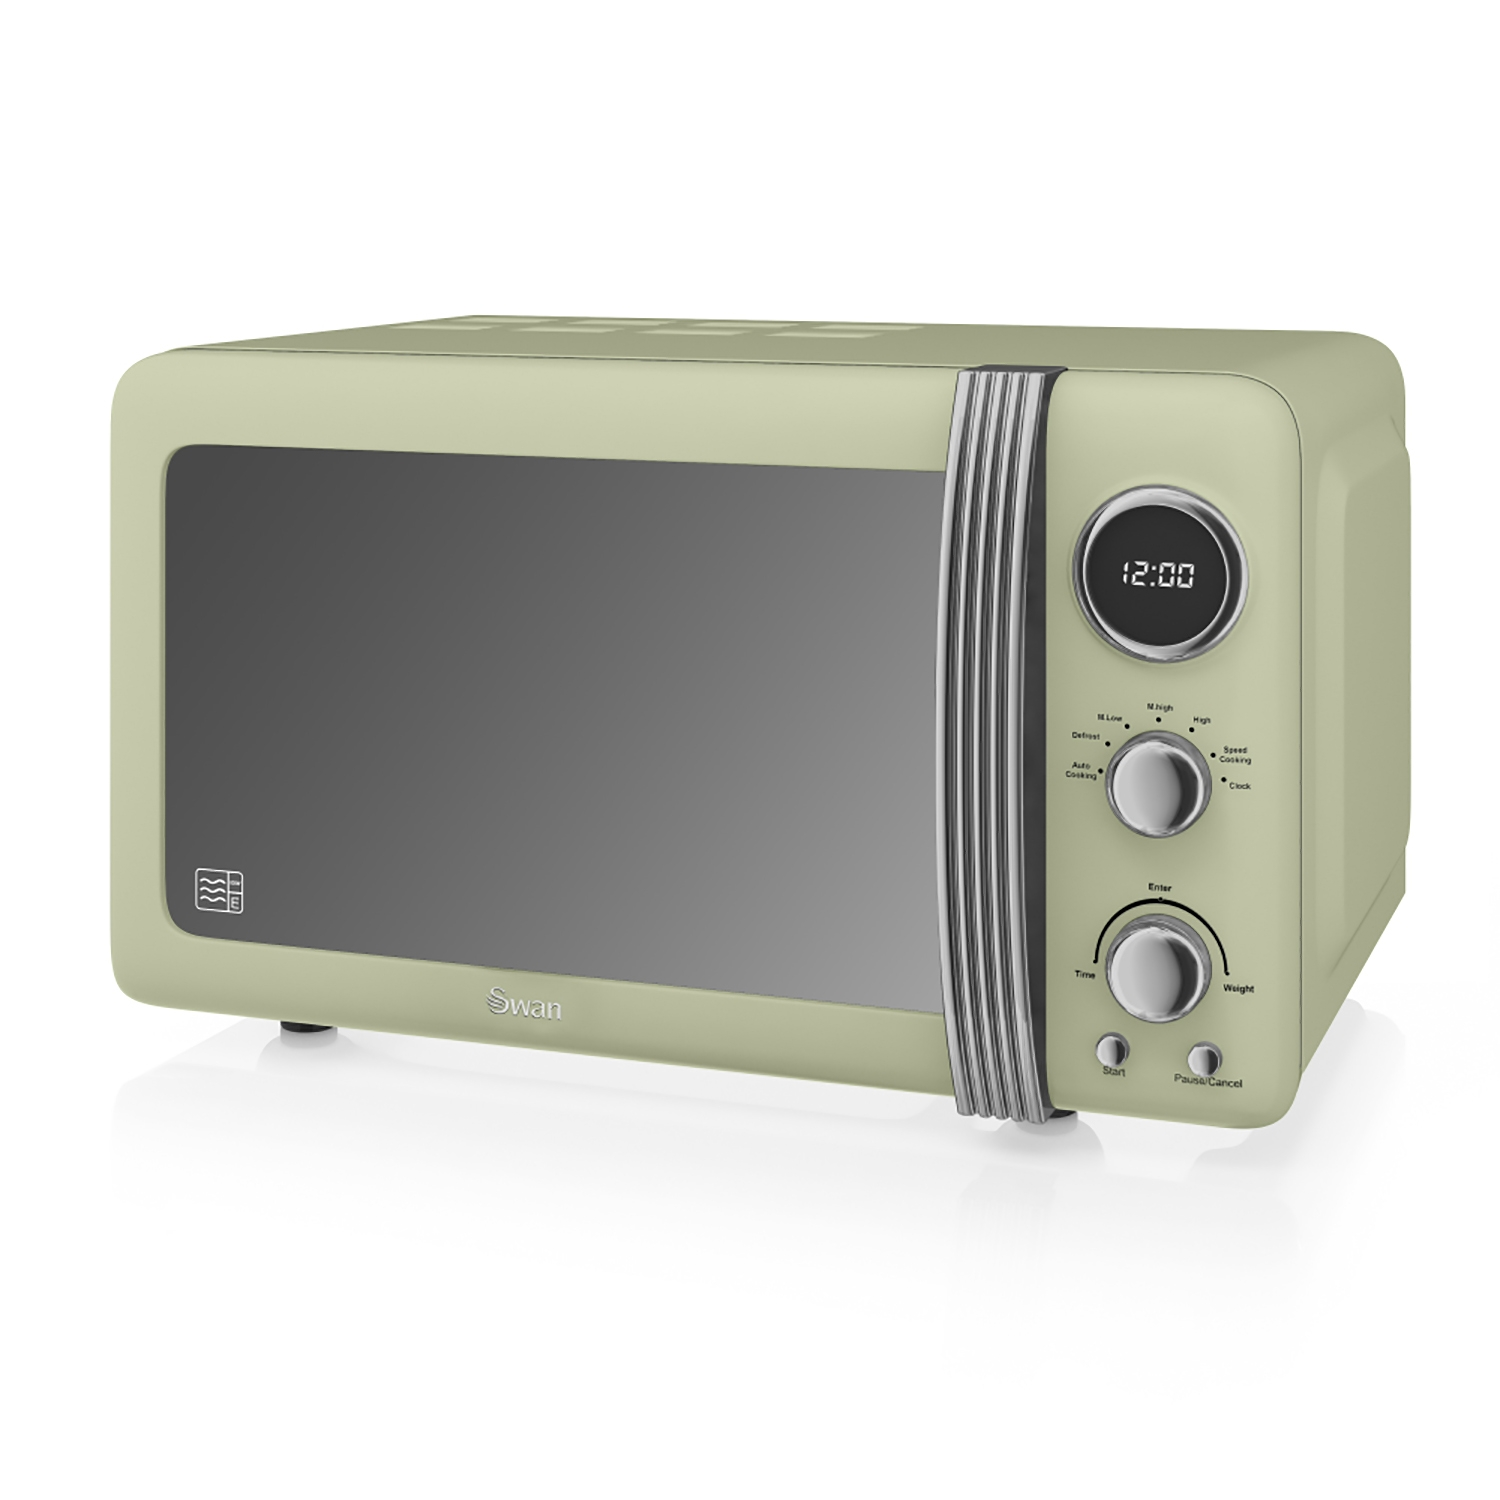 Image of Swan Retro Digital Microwave 20 Litre, Green